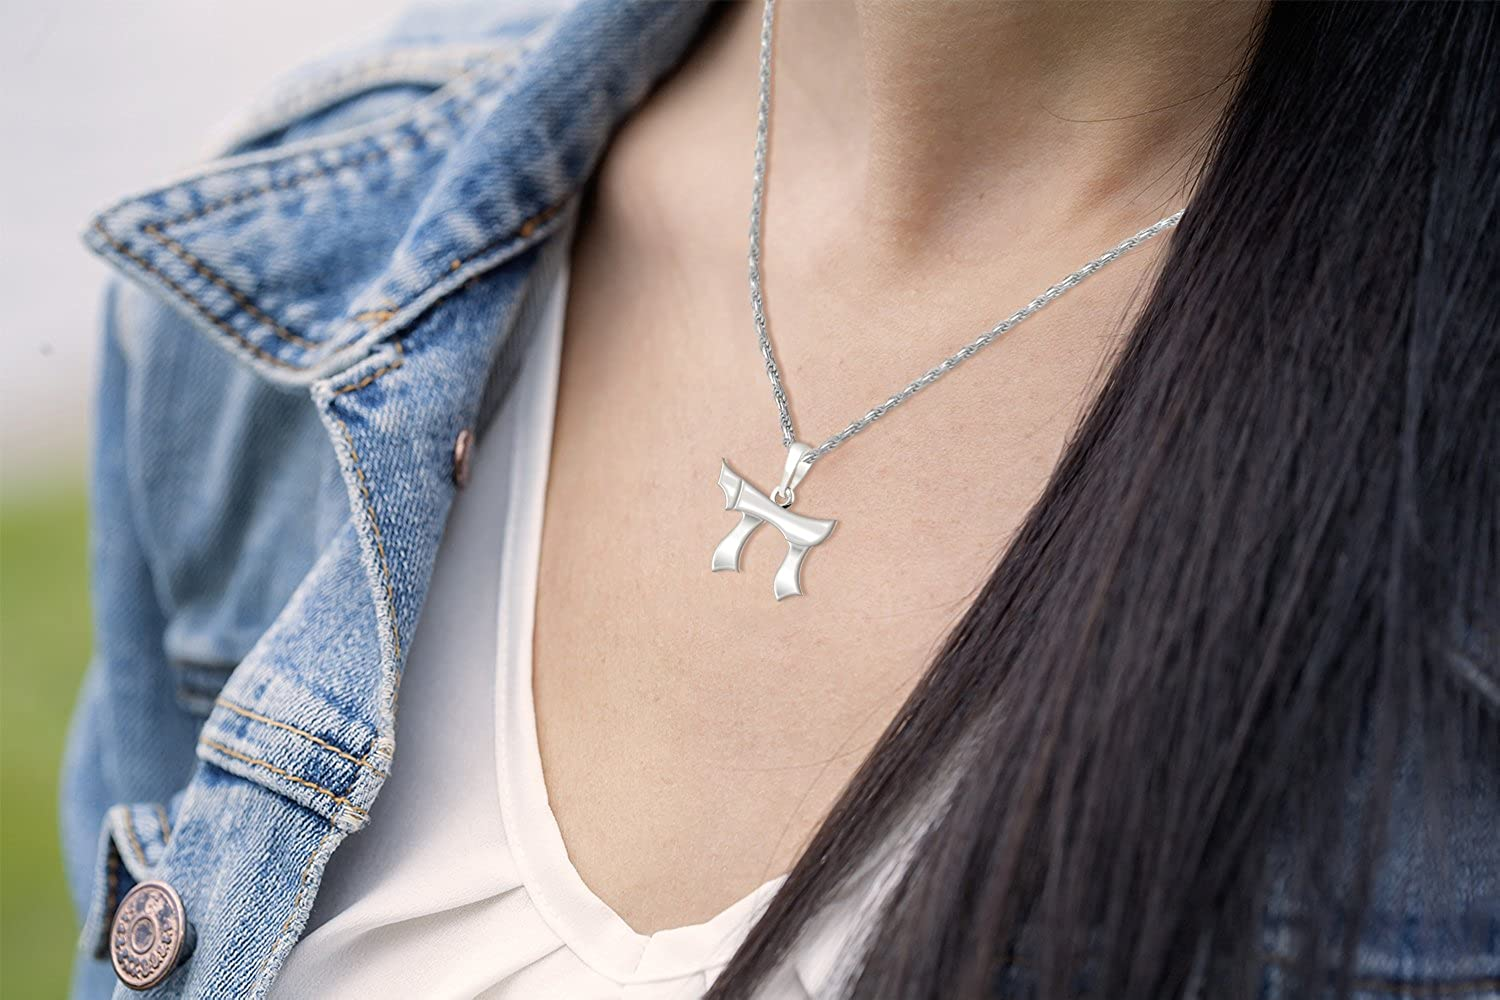 Womens 0.625in 0.925 Sterling Silver Jewish Chai Sign of Life Pendant Necklace 18in to 24in Length